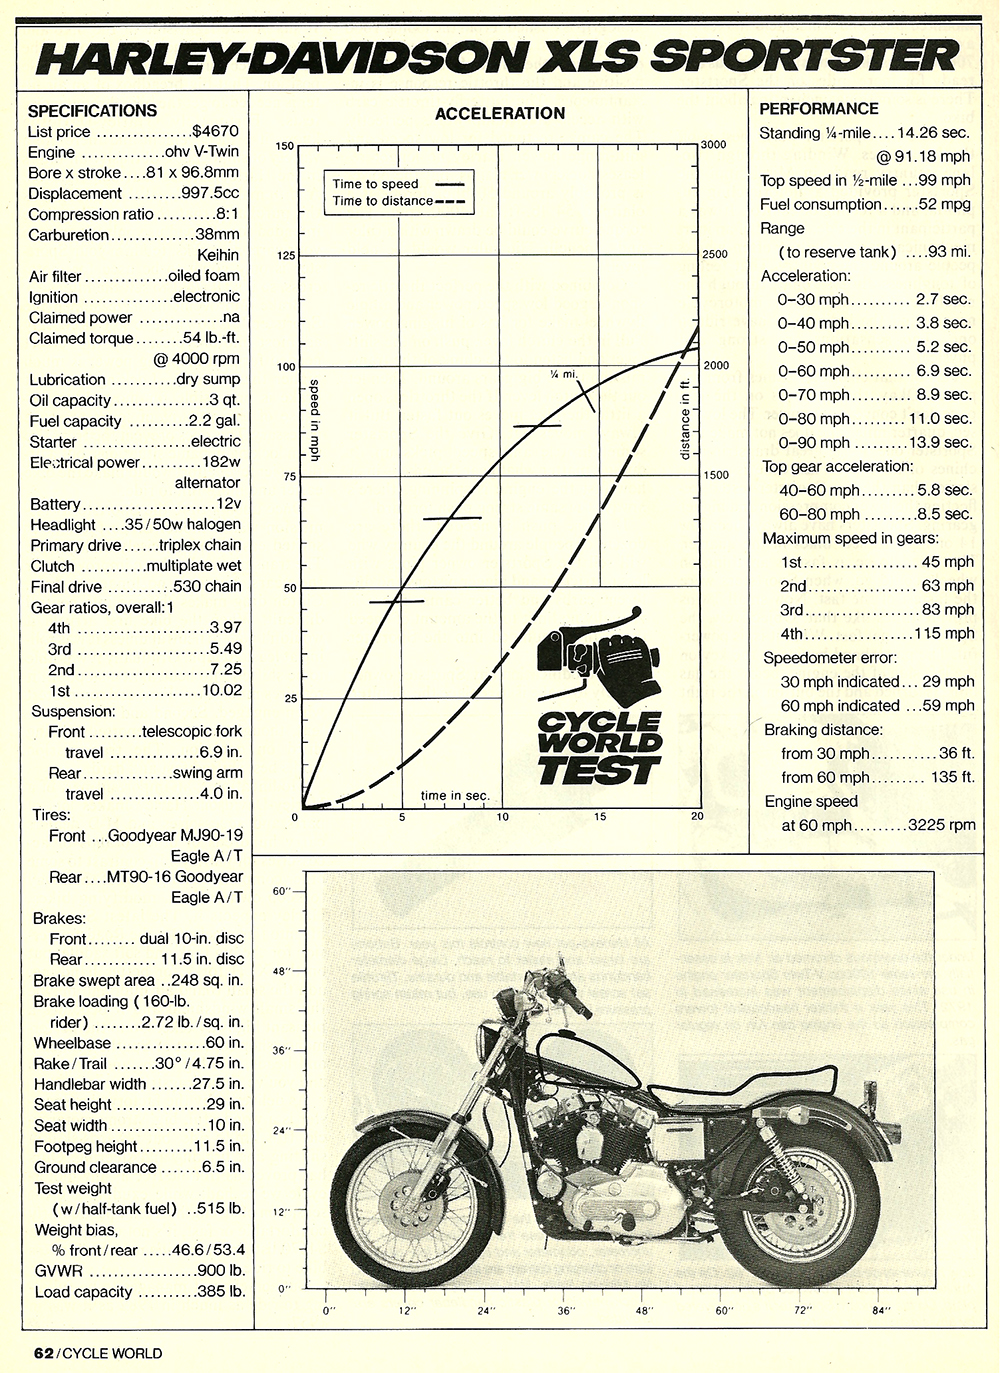 1982 Harley Davidson XLS Sportster 25th road test 05.jpg